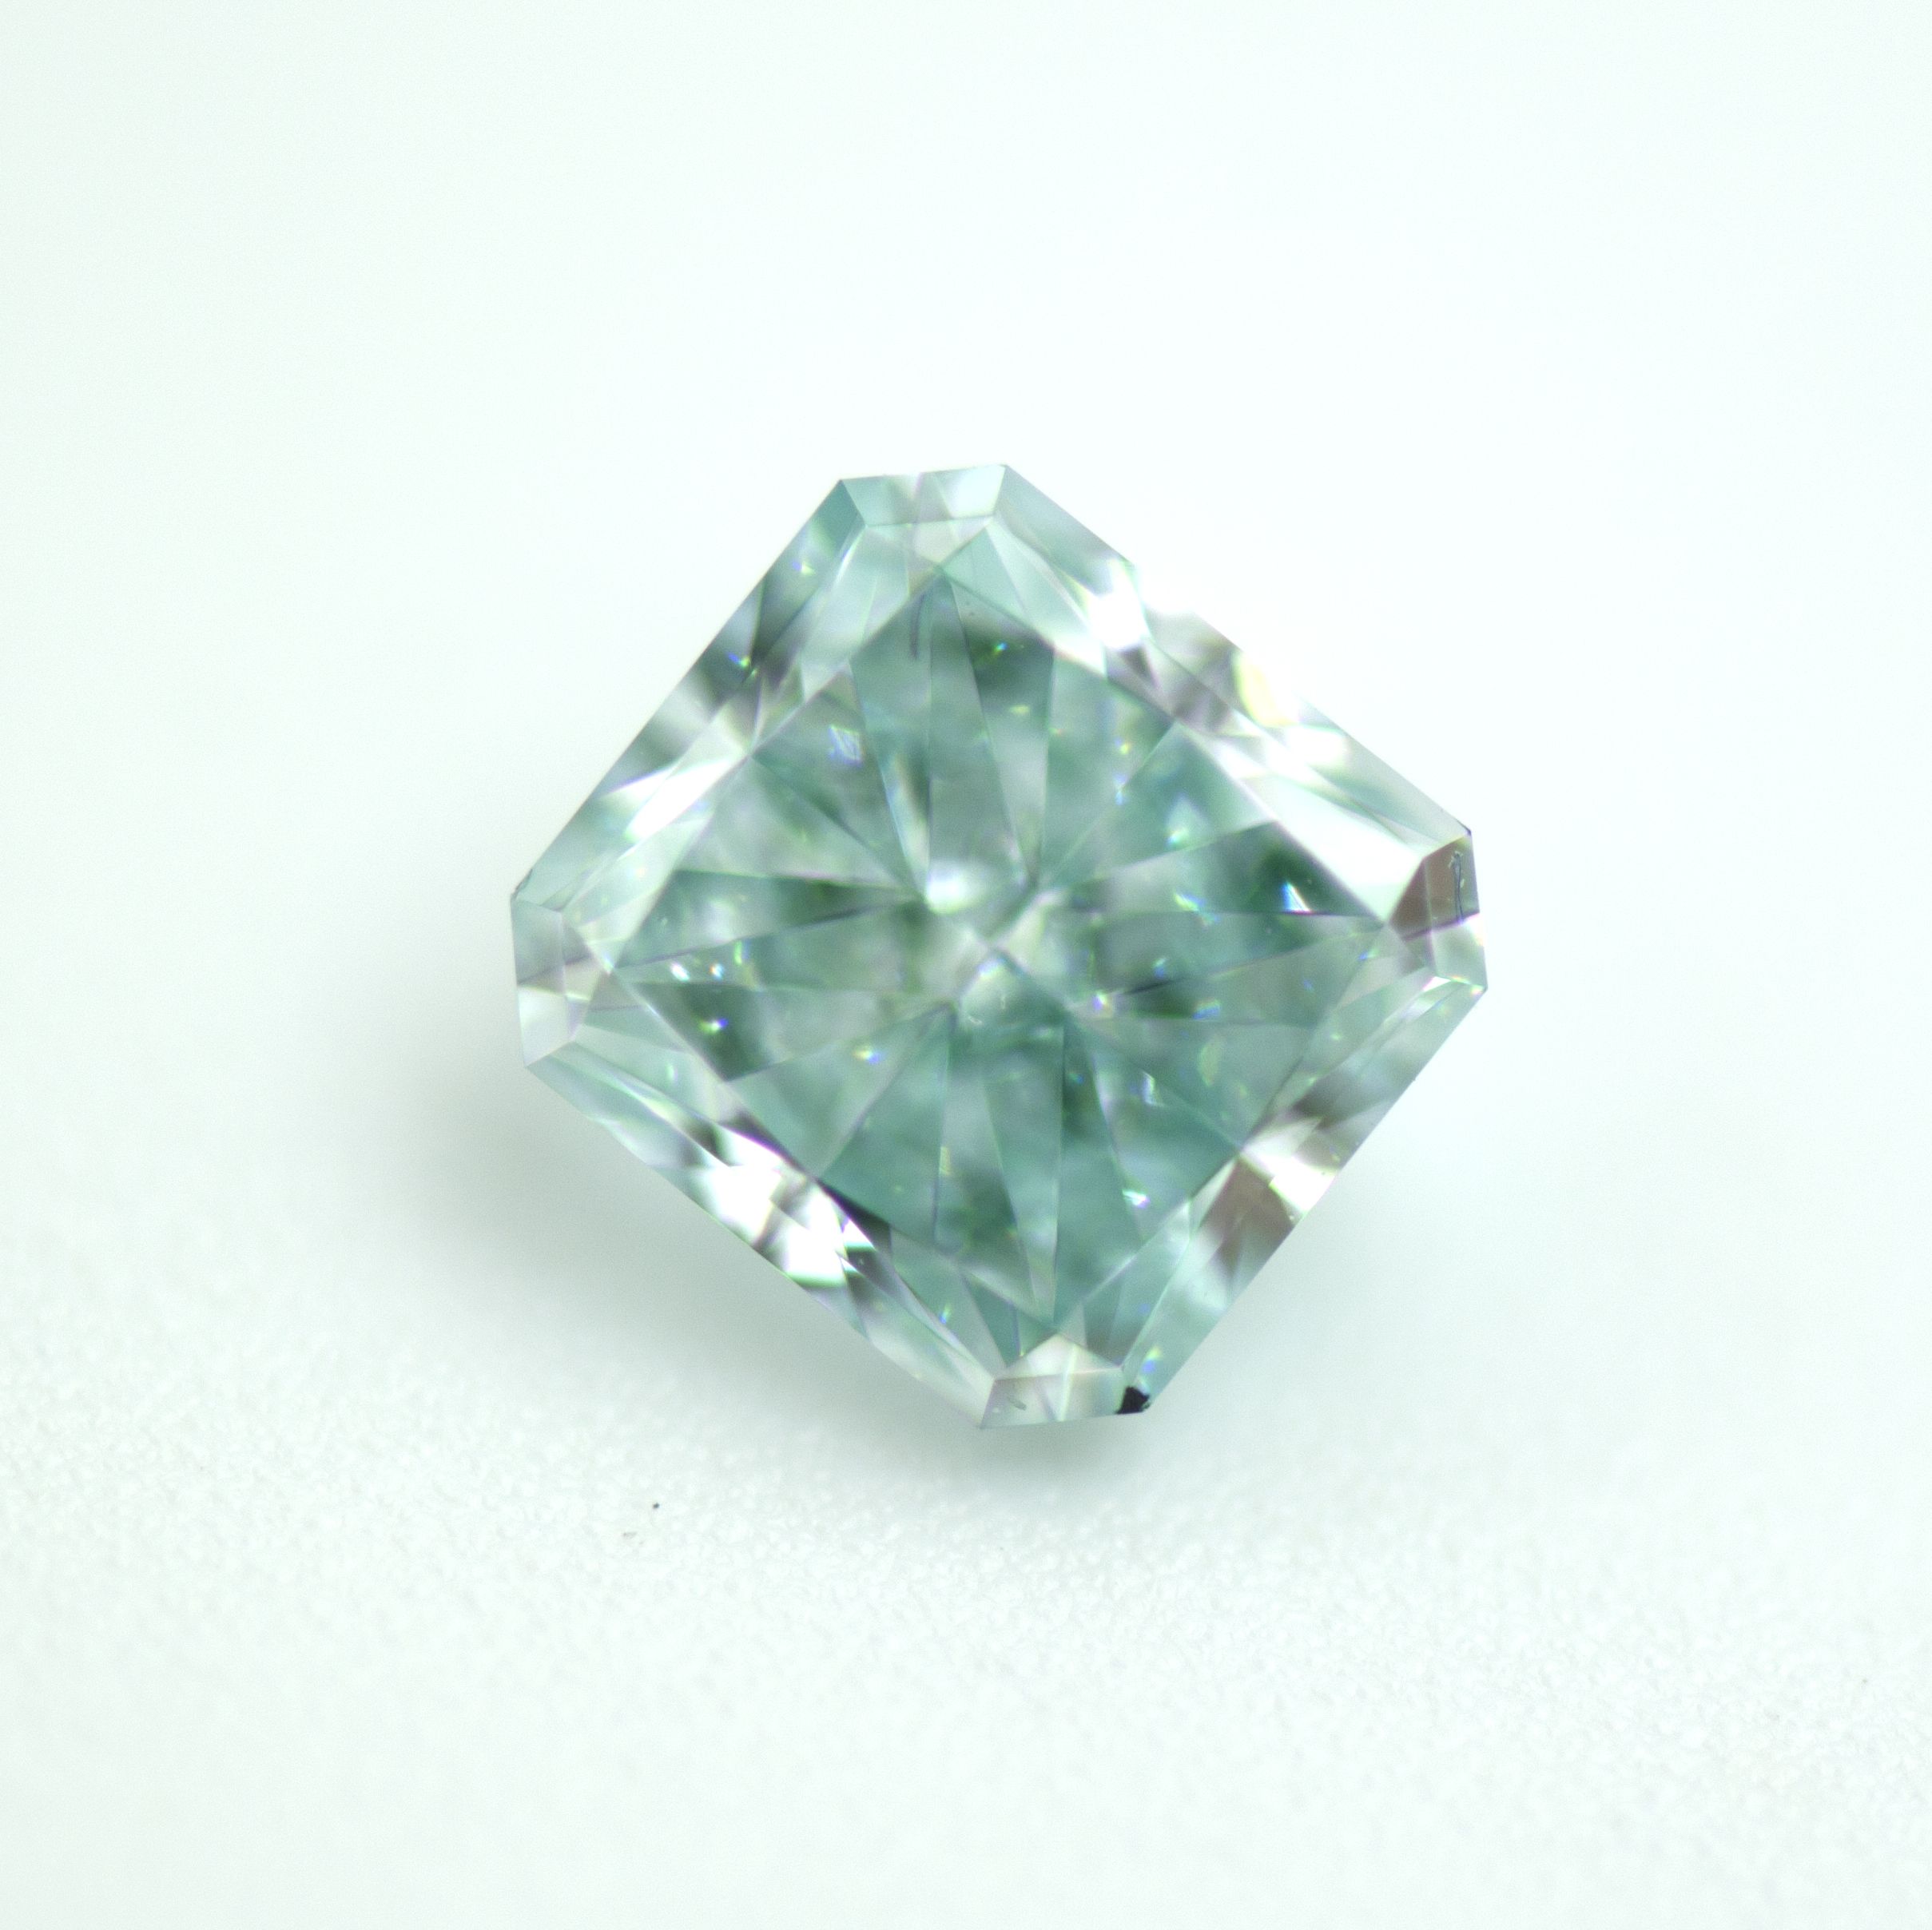 diamond a gem with content when ring gemstones international copper magnification secondary bright under ten its high color article society paraiba blue purple creates than green viewed hues rarer